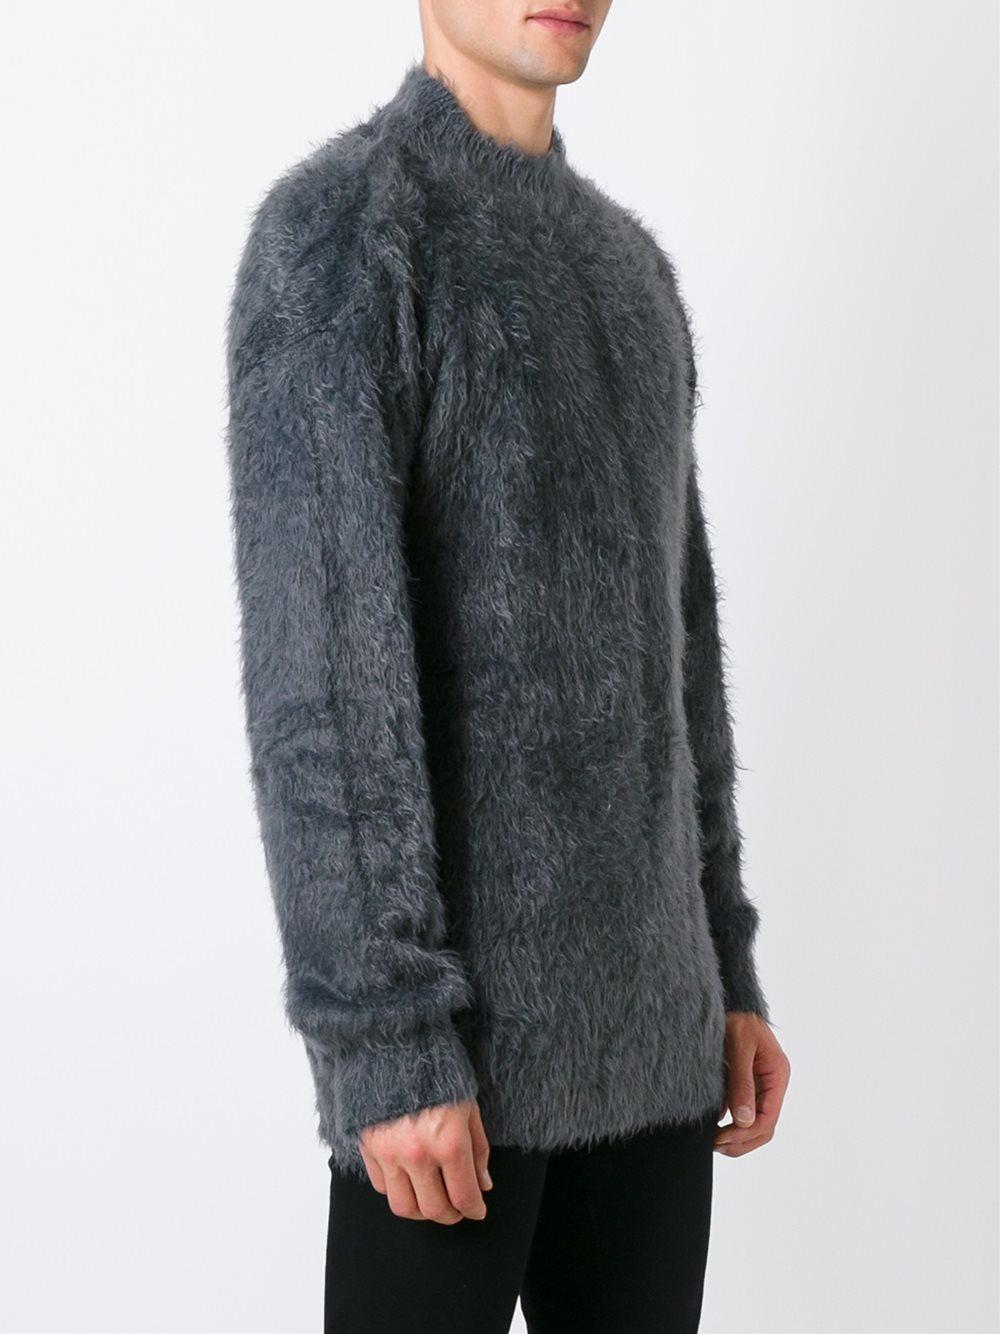 Faith connexion Fuzzy Sweater in Gray for Men | Lyst